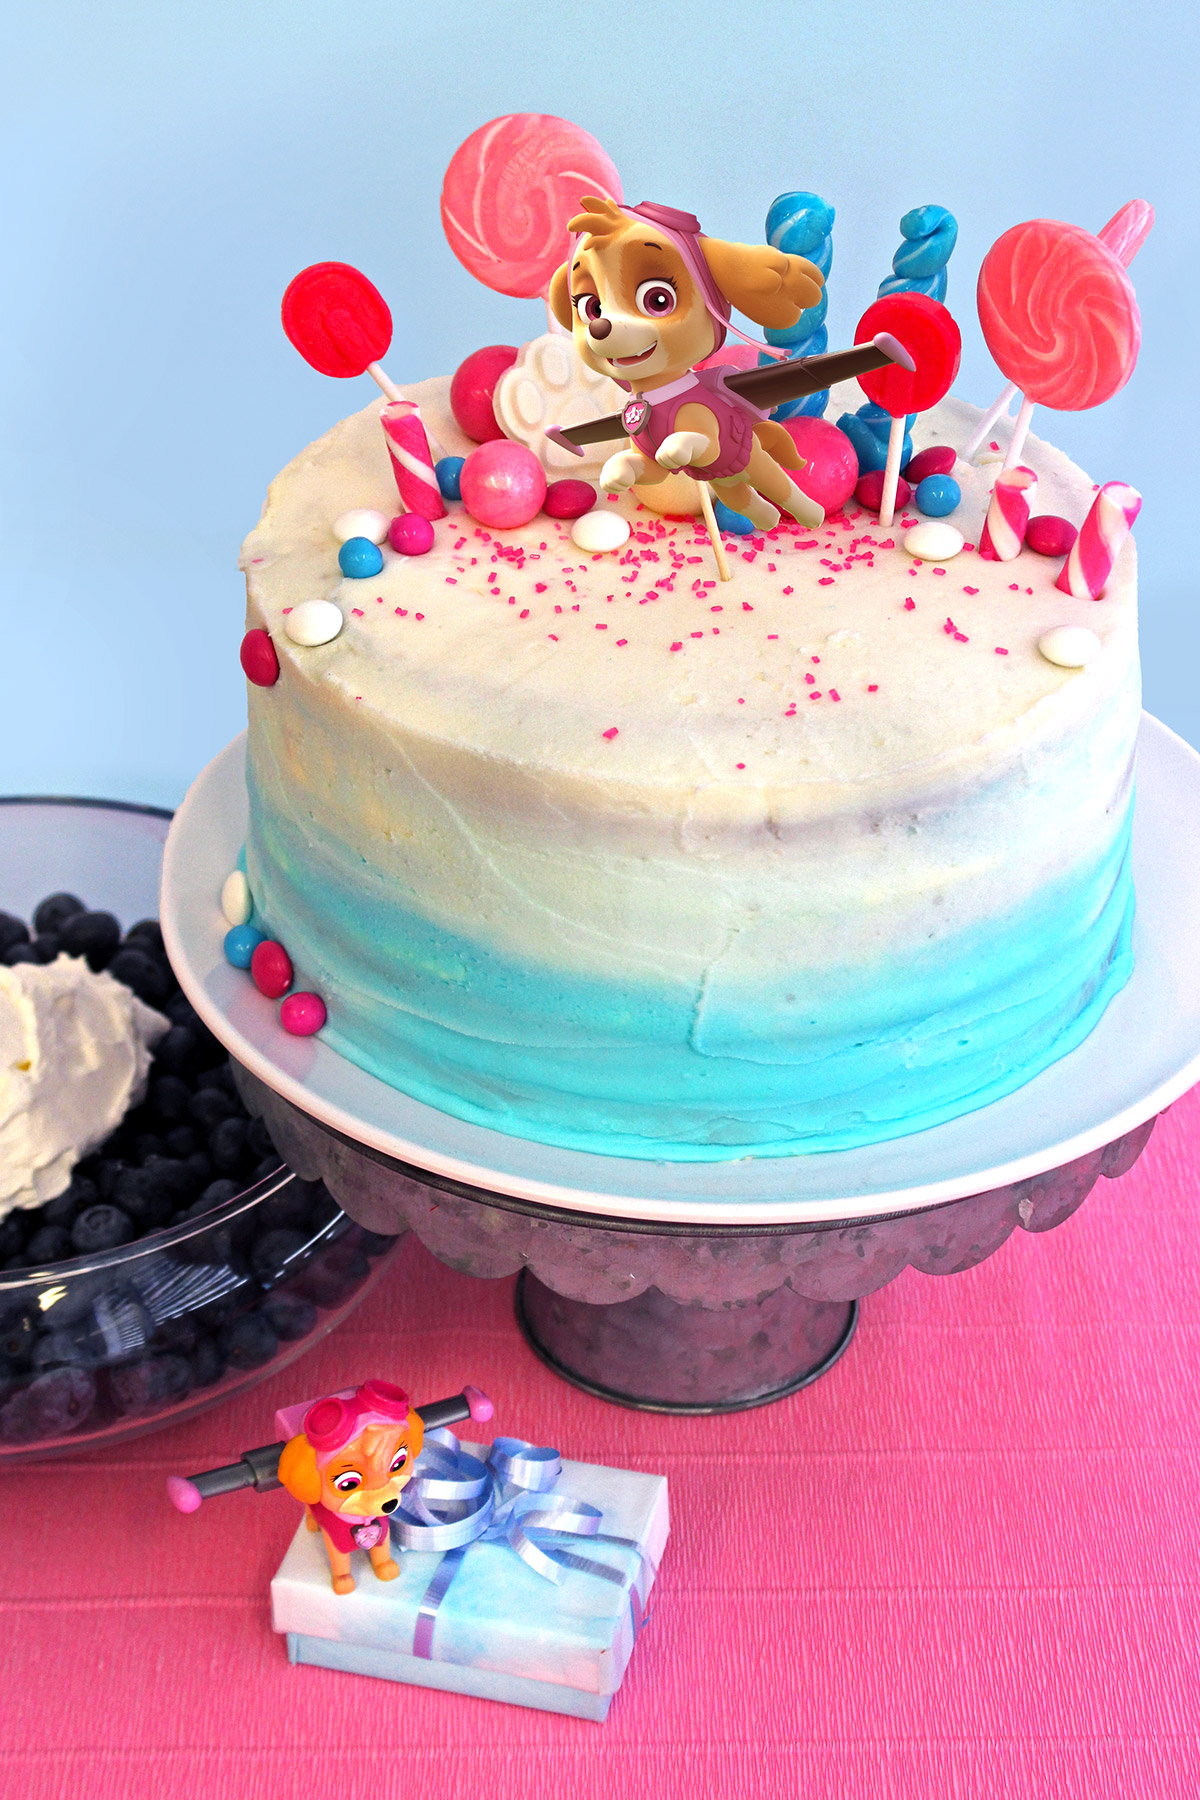 PAW Patrol Skye Birthday Cake Topper | Nickelodeon Parents